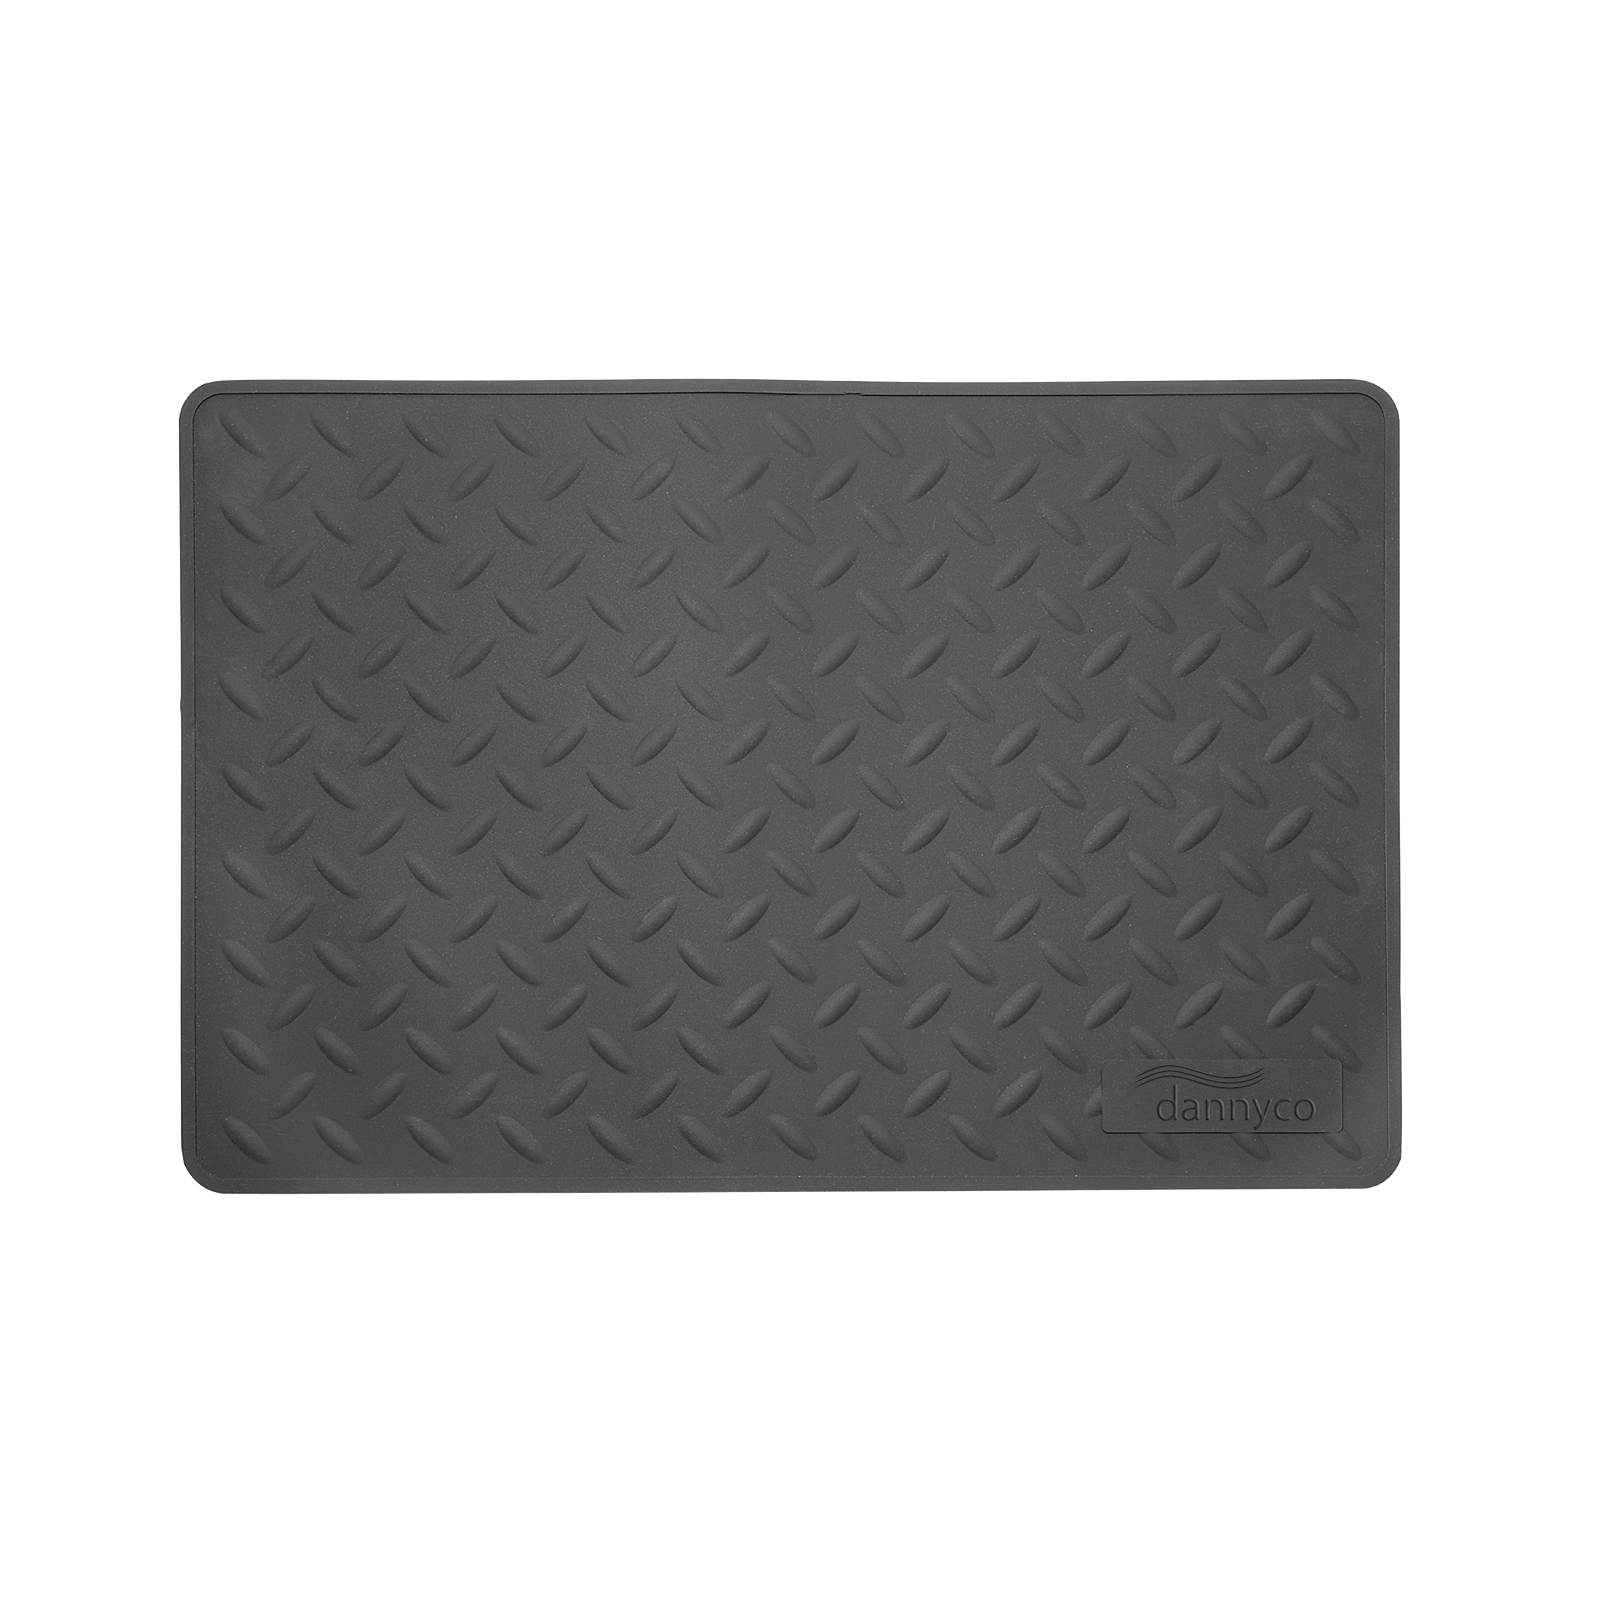 heat blanket materials product pad for resistant mats electronics x bts repair welding silicone btshow gun mat station soldering f iron